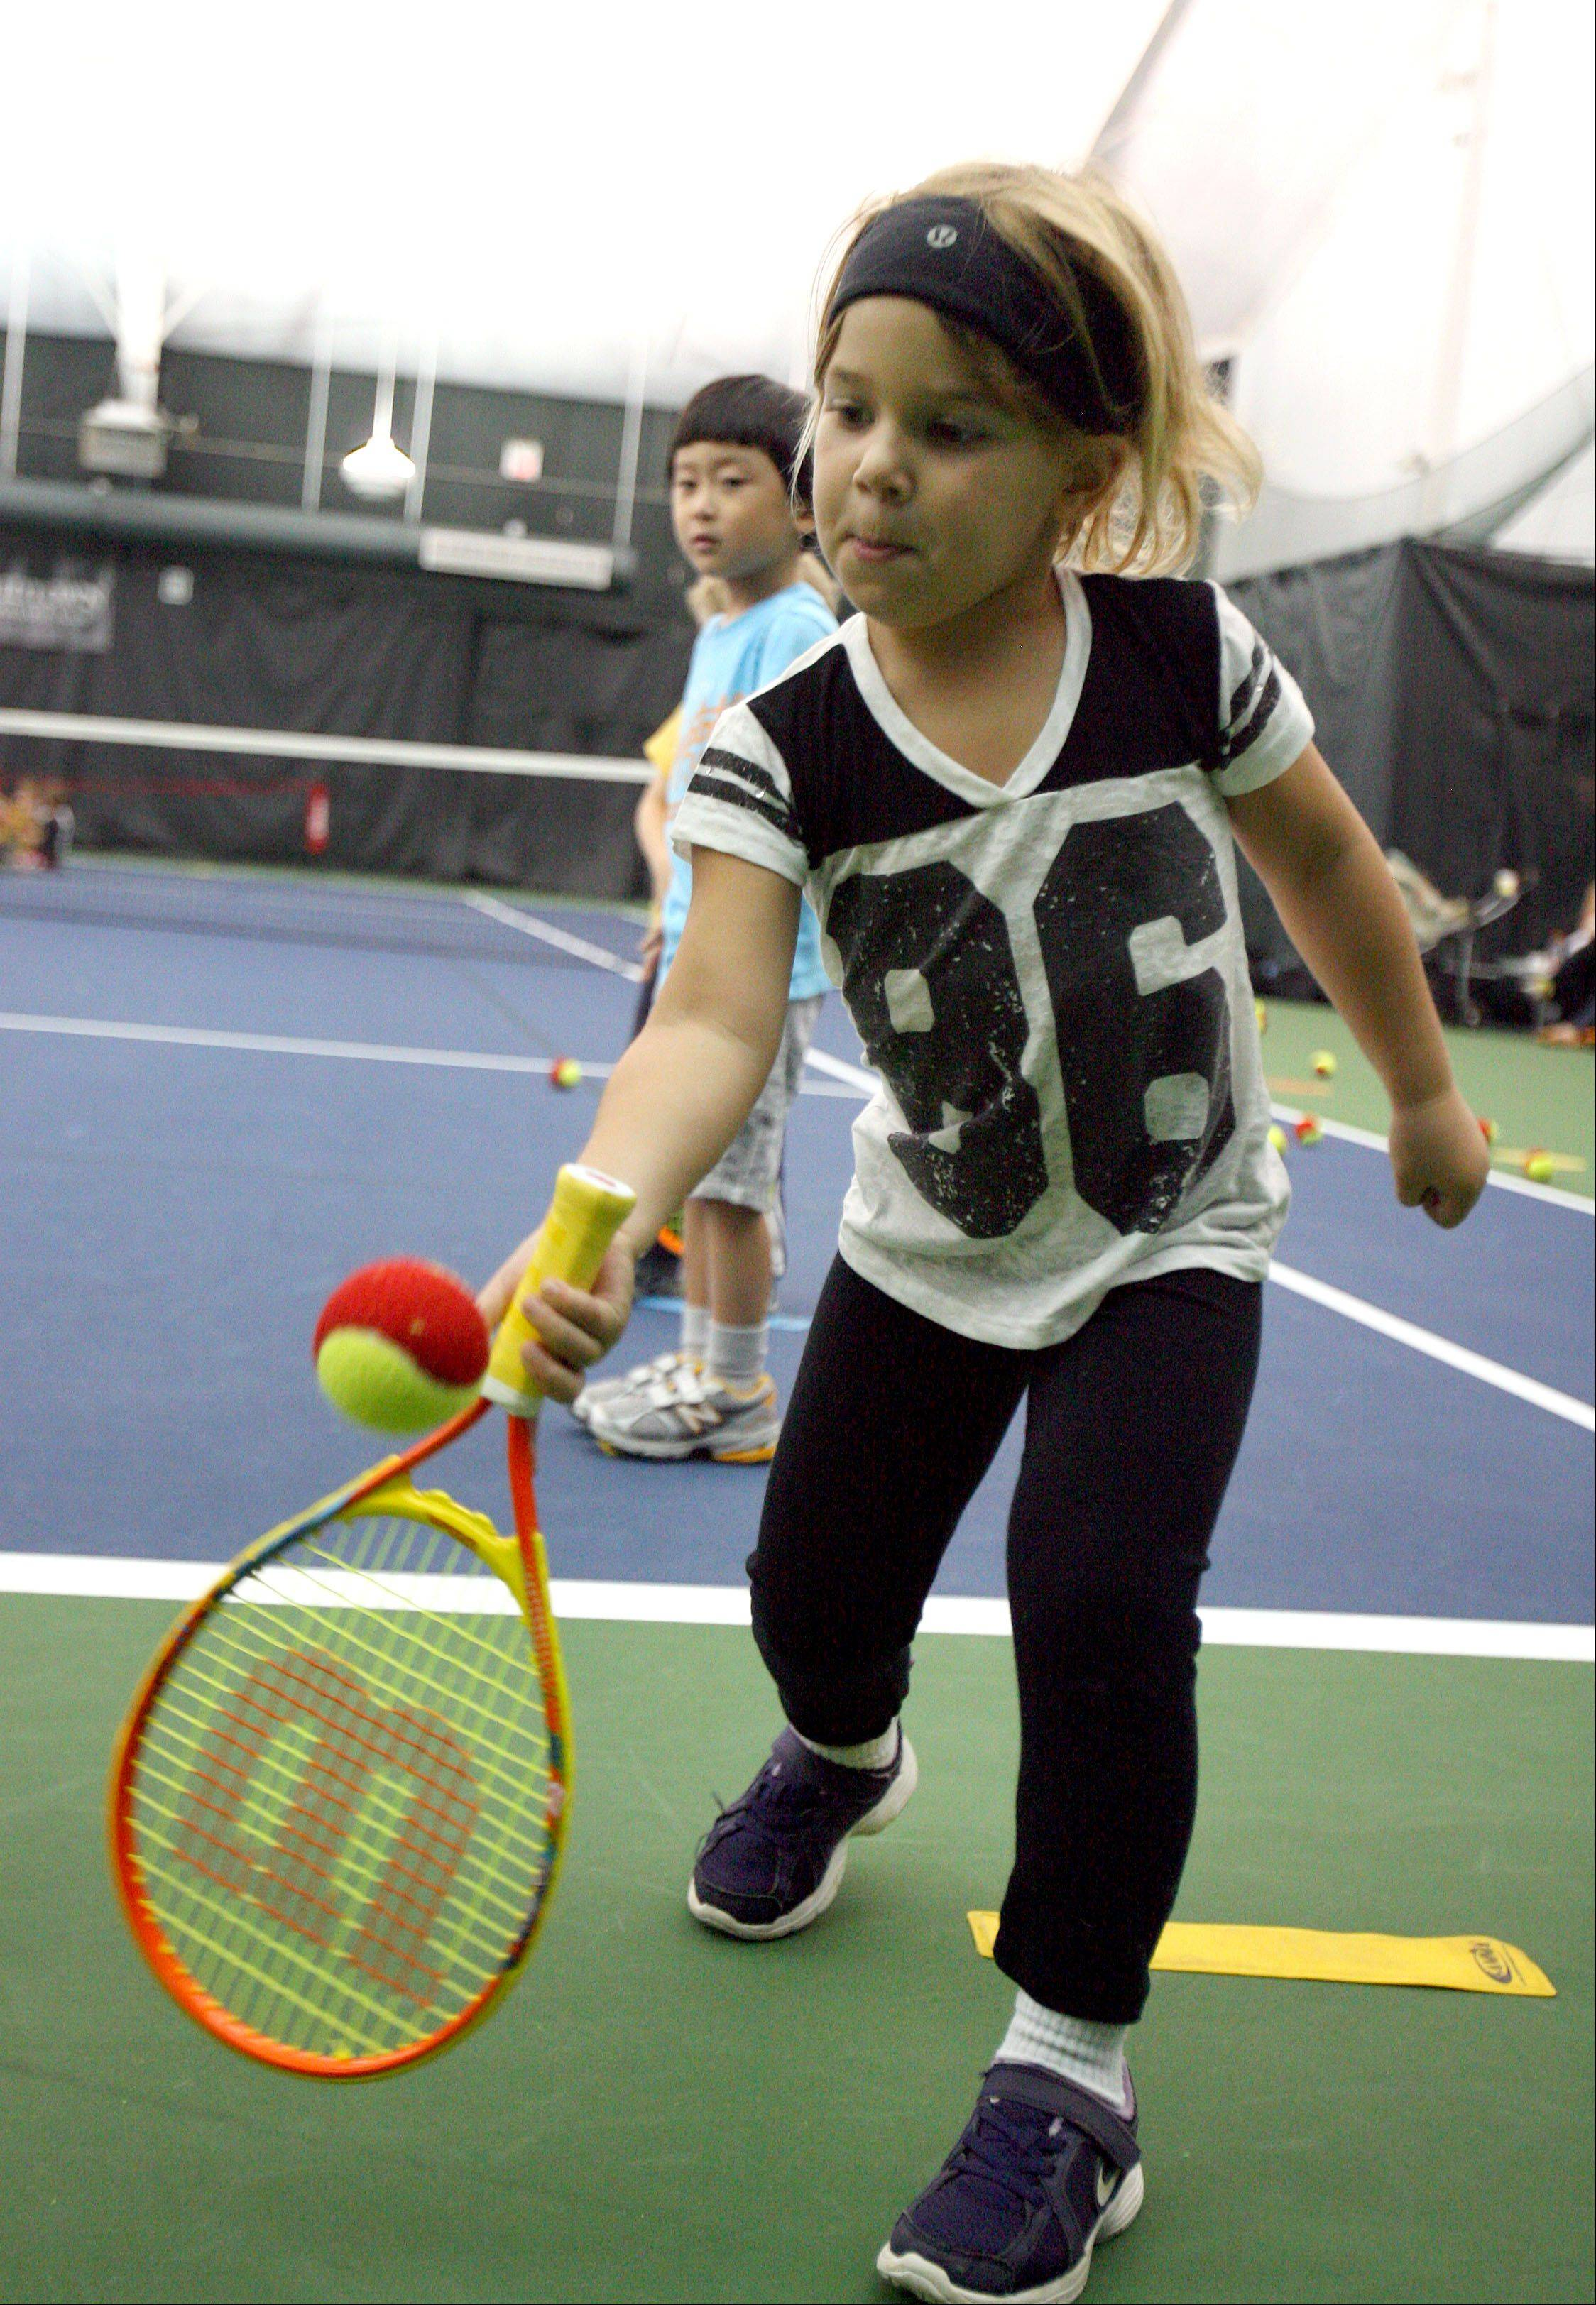 Tennis Explorers serves up fun, enrichment for 3- and 4-year-olds